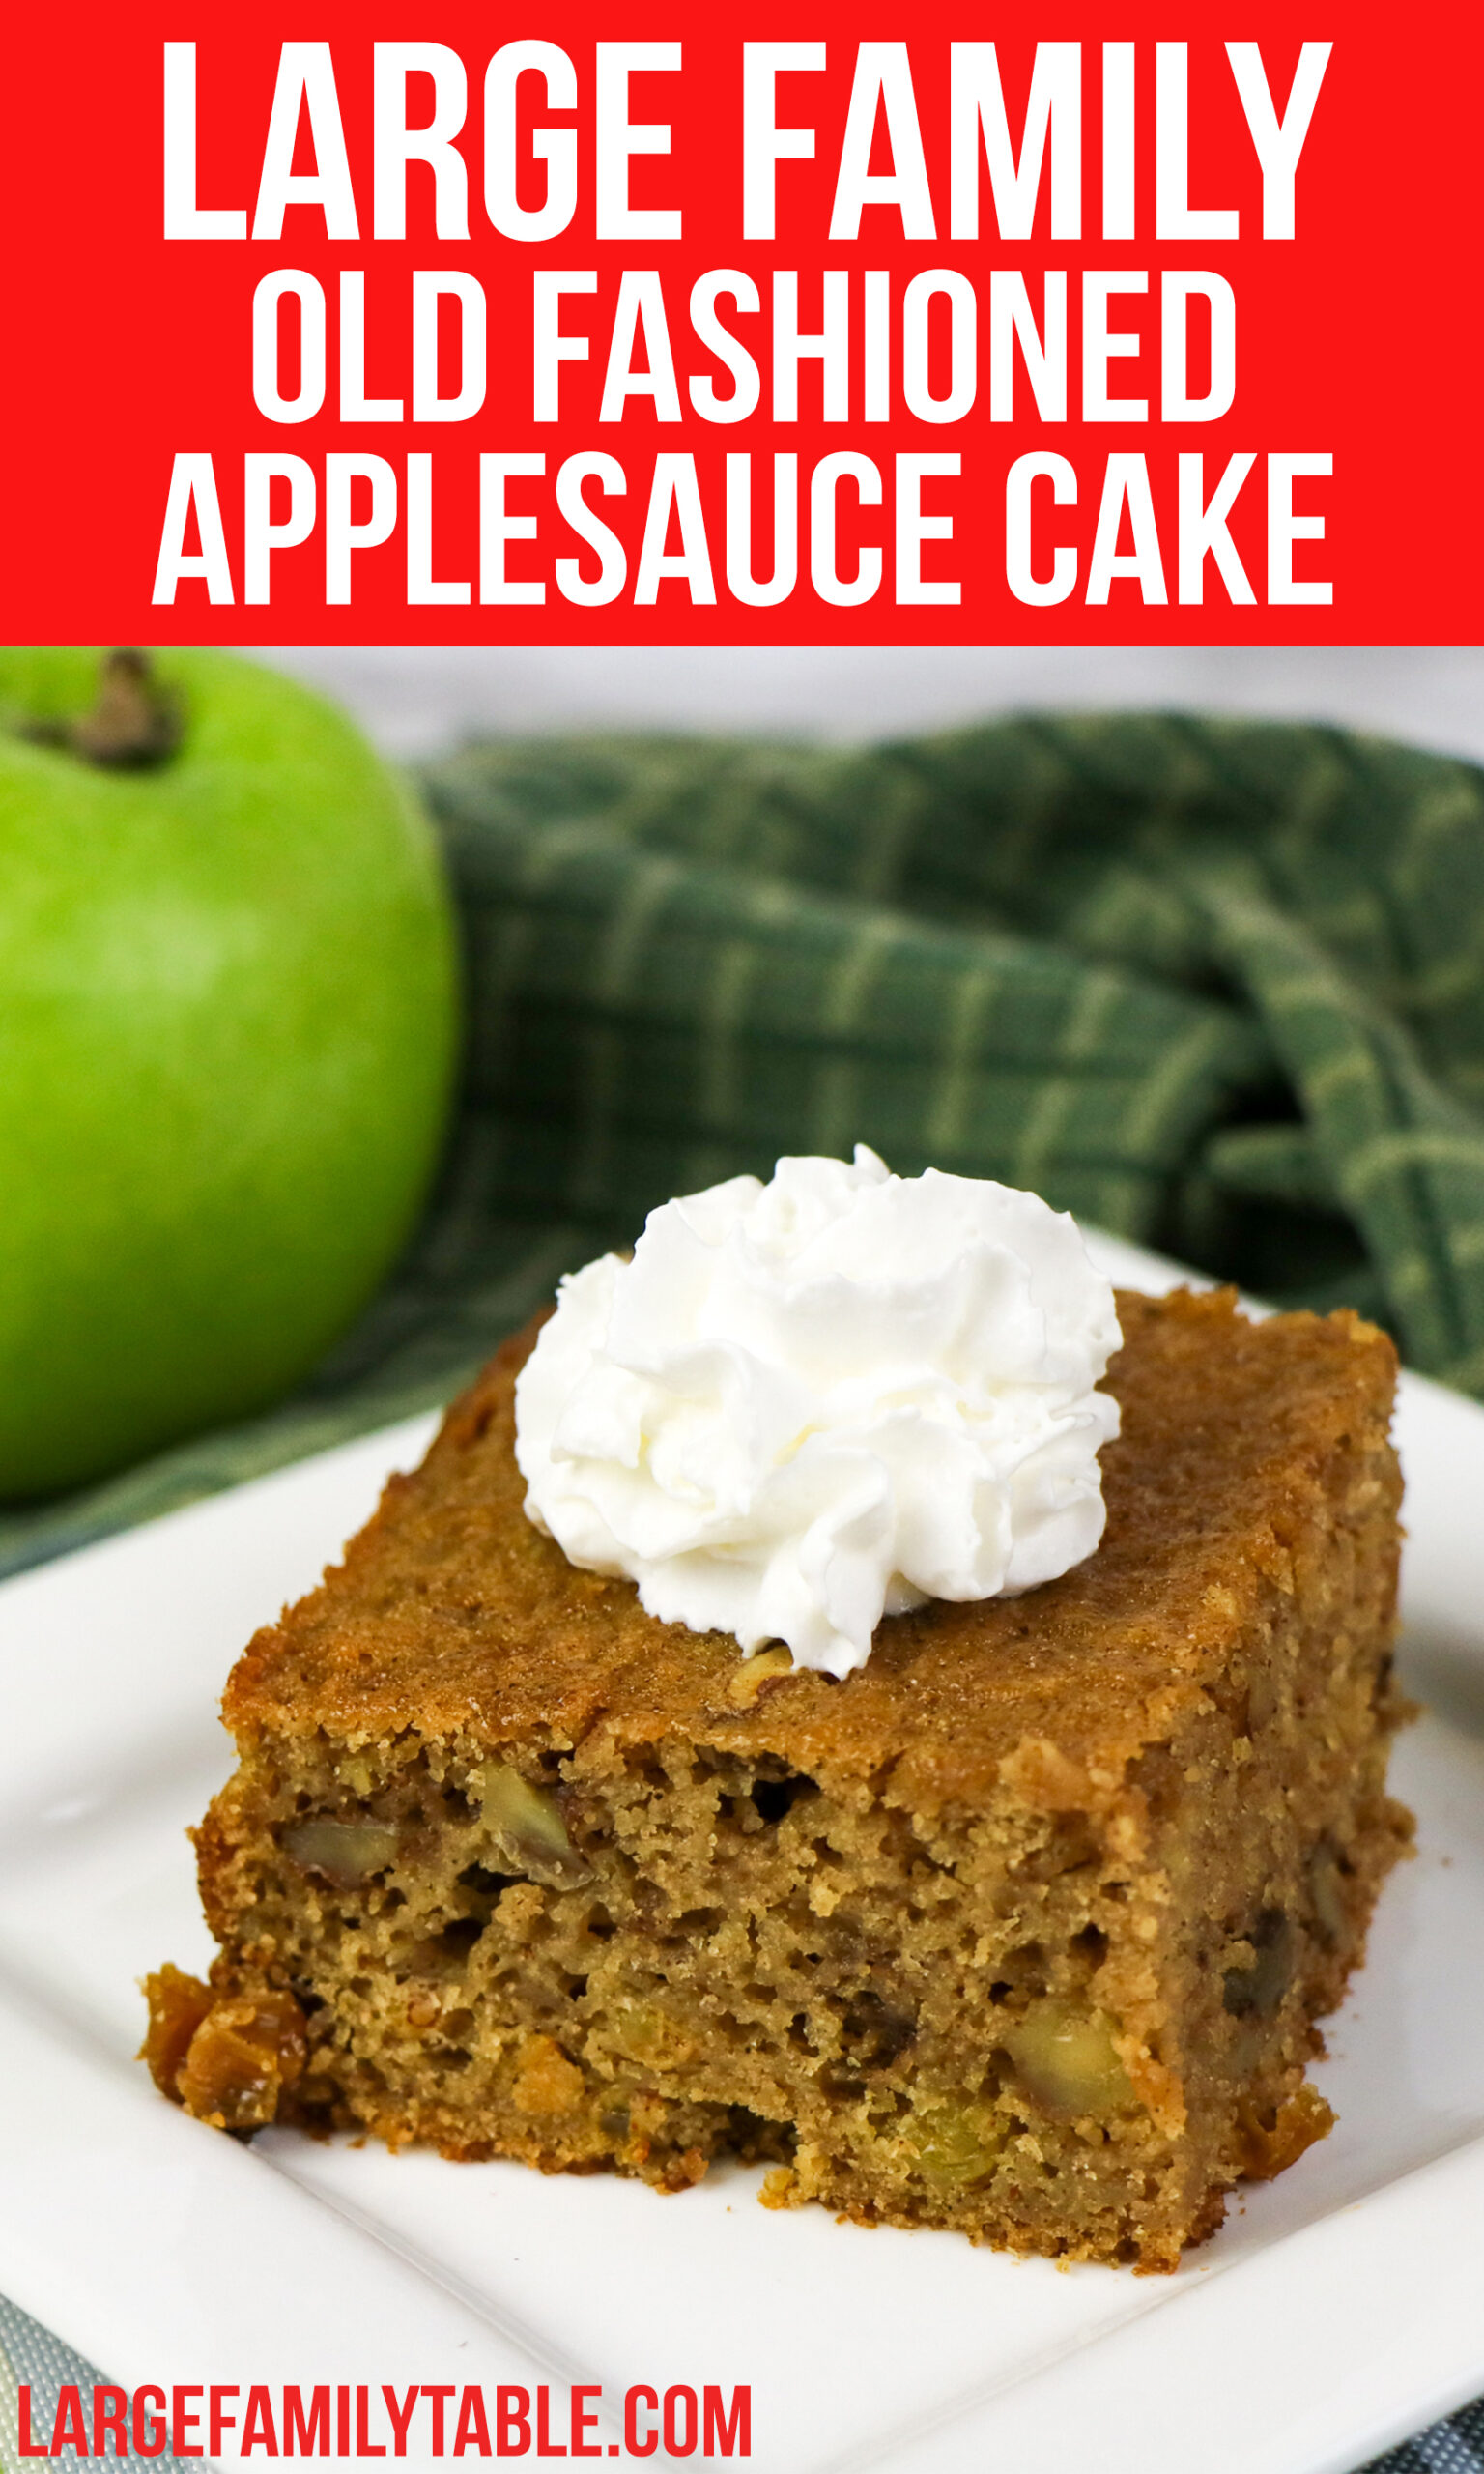 Big Family Old Fashioned Applesauce Cake